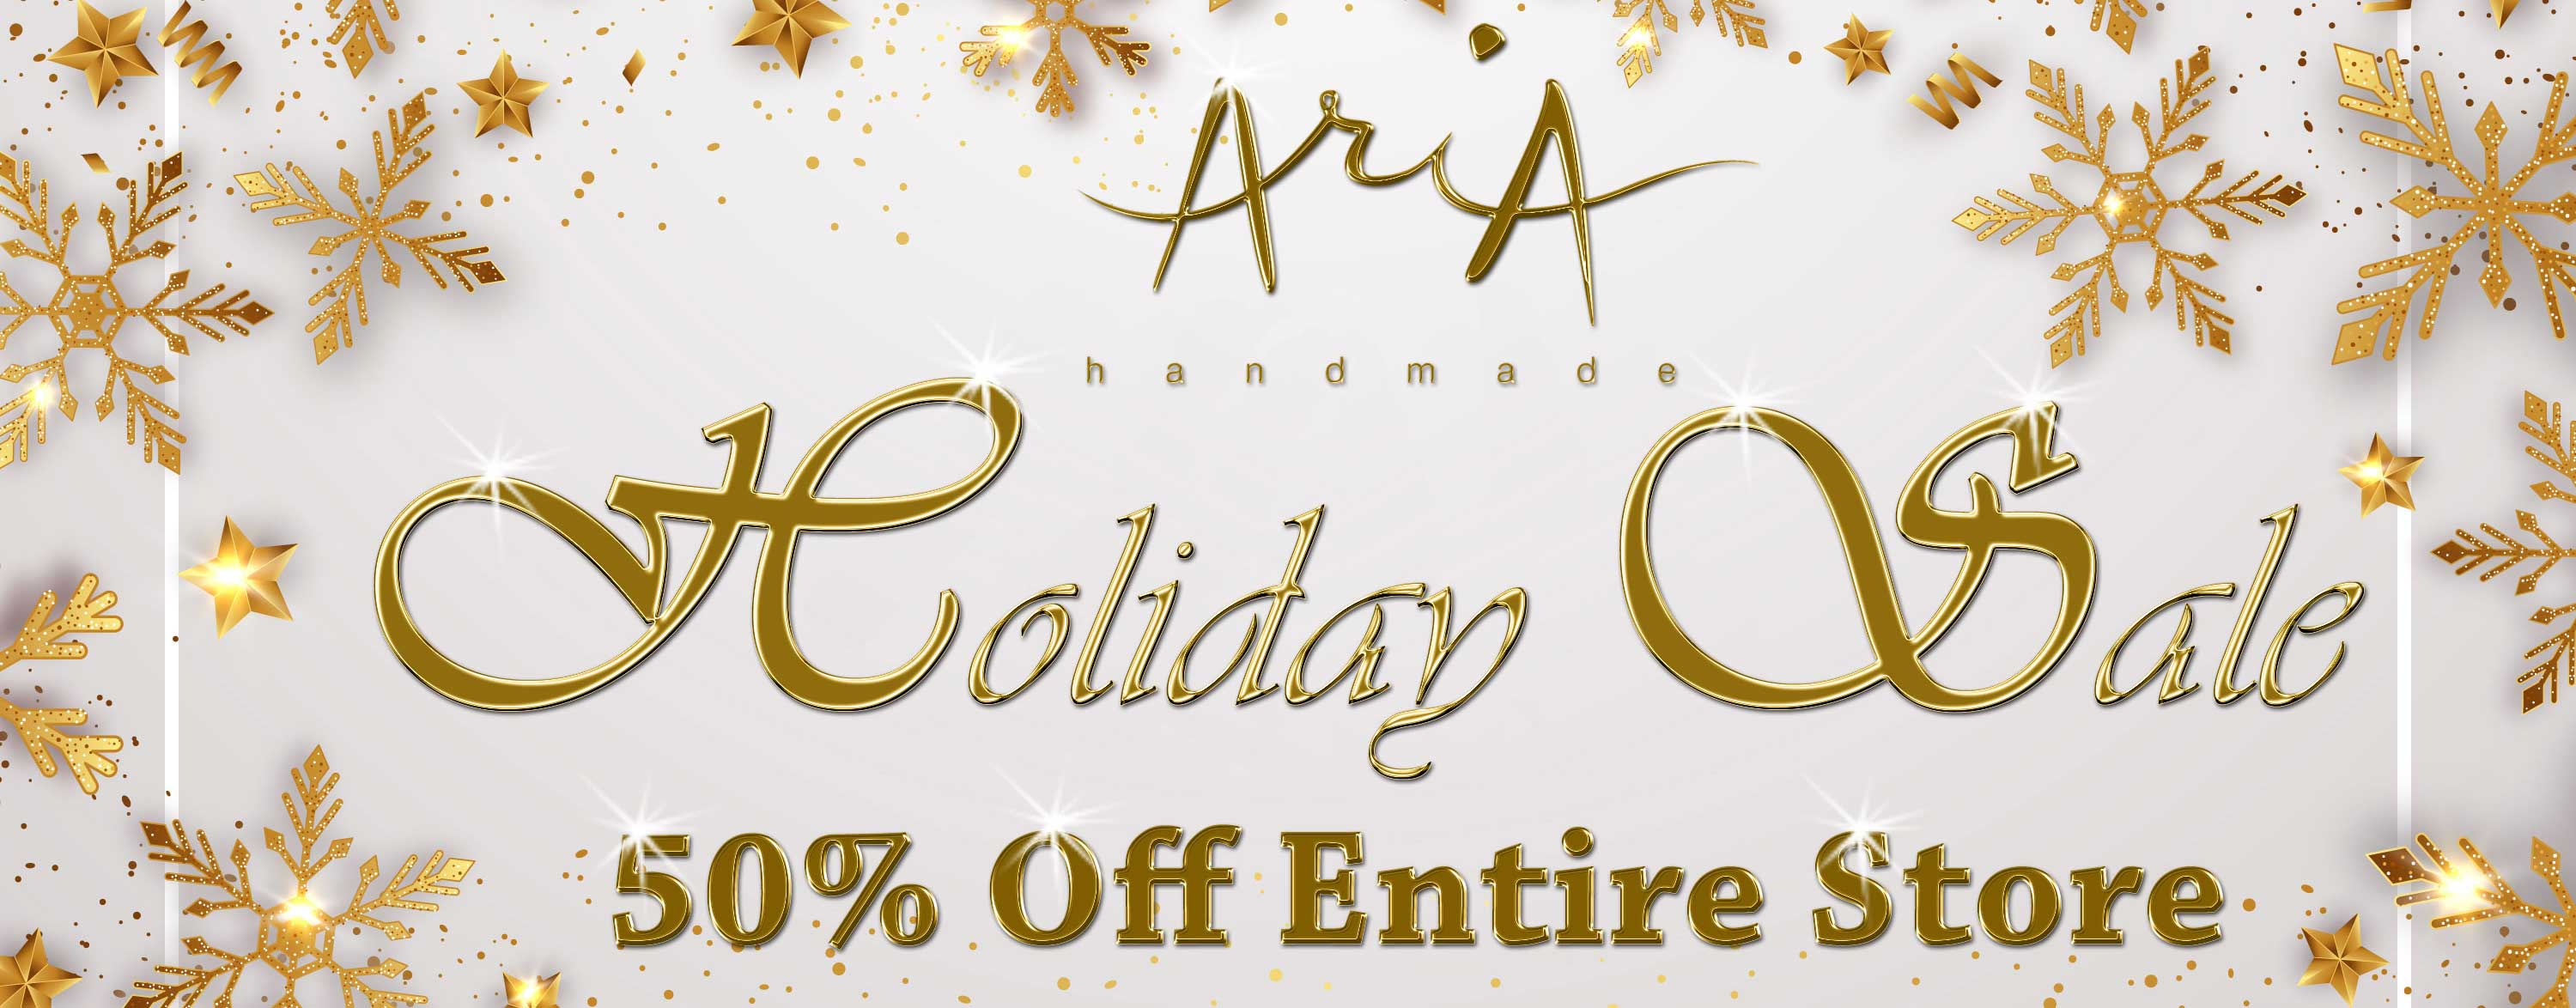 aria-holiday-sale-4.jpg